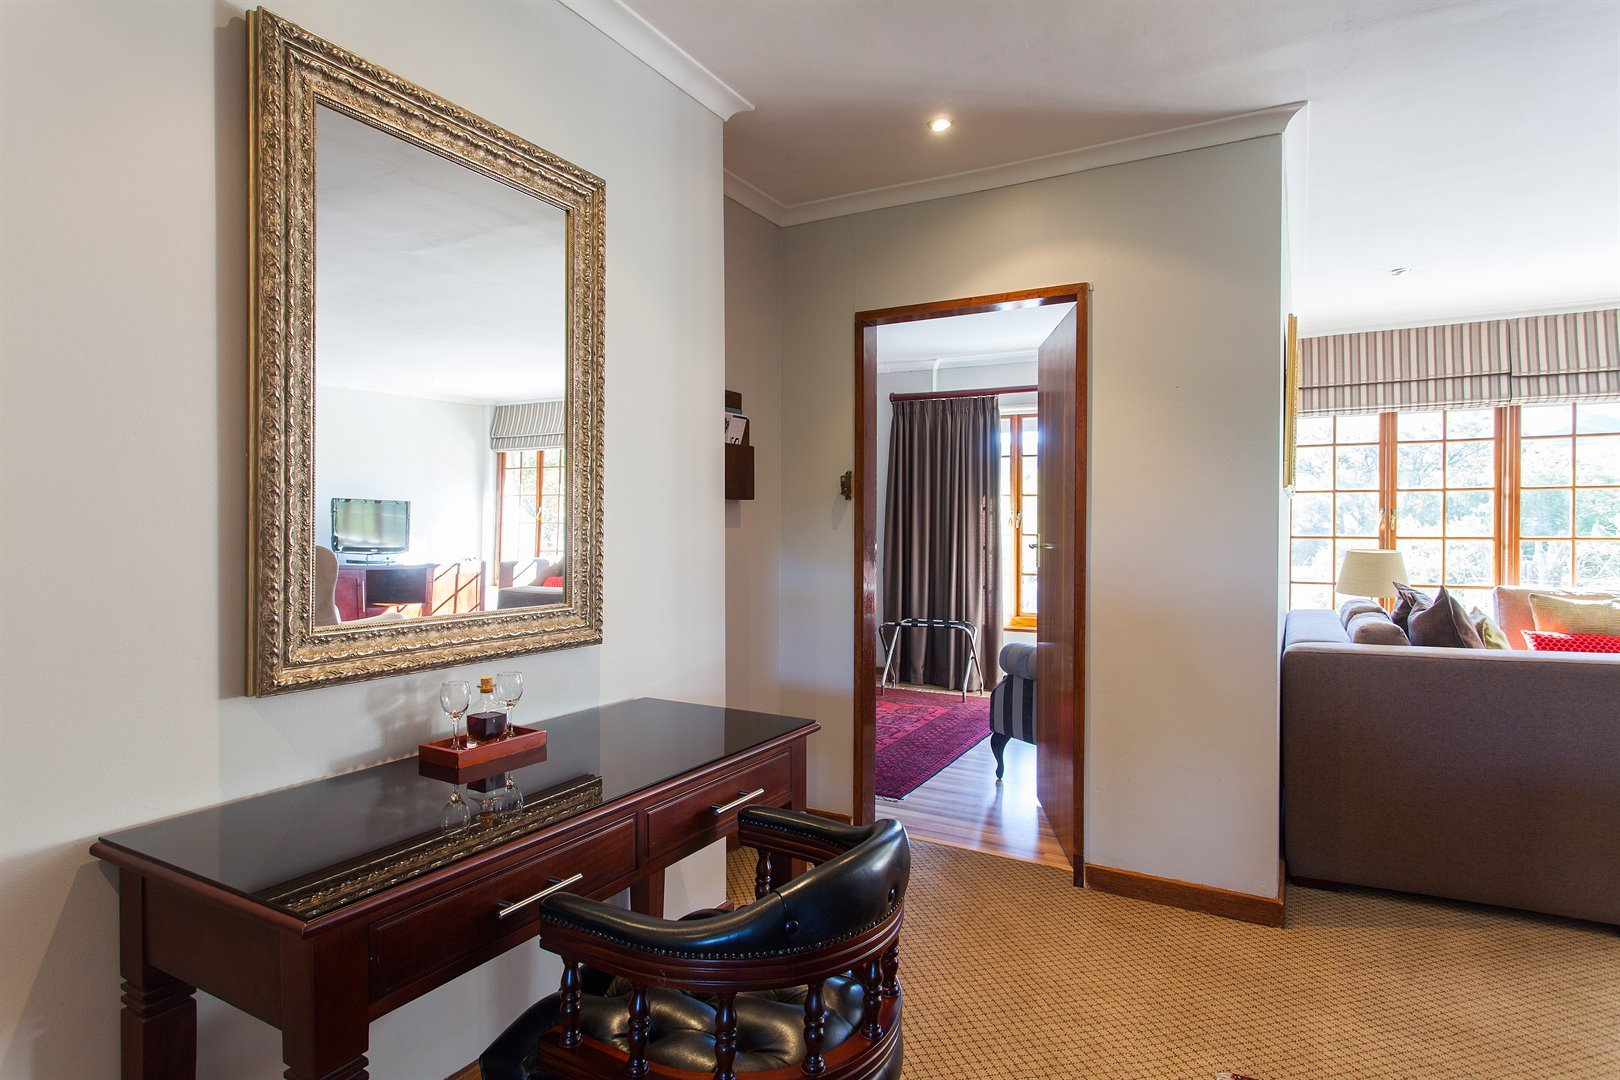 Mostertsdrift property for sale. Ref No: 13480599. Picture no 11